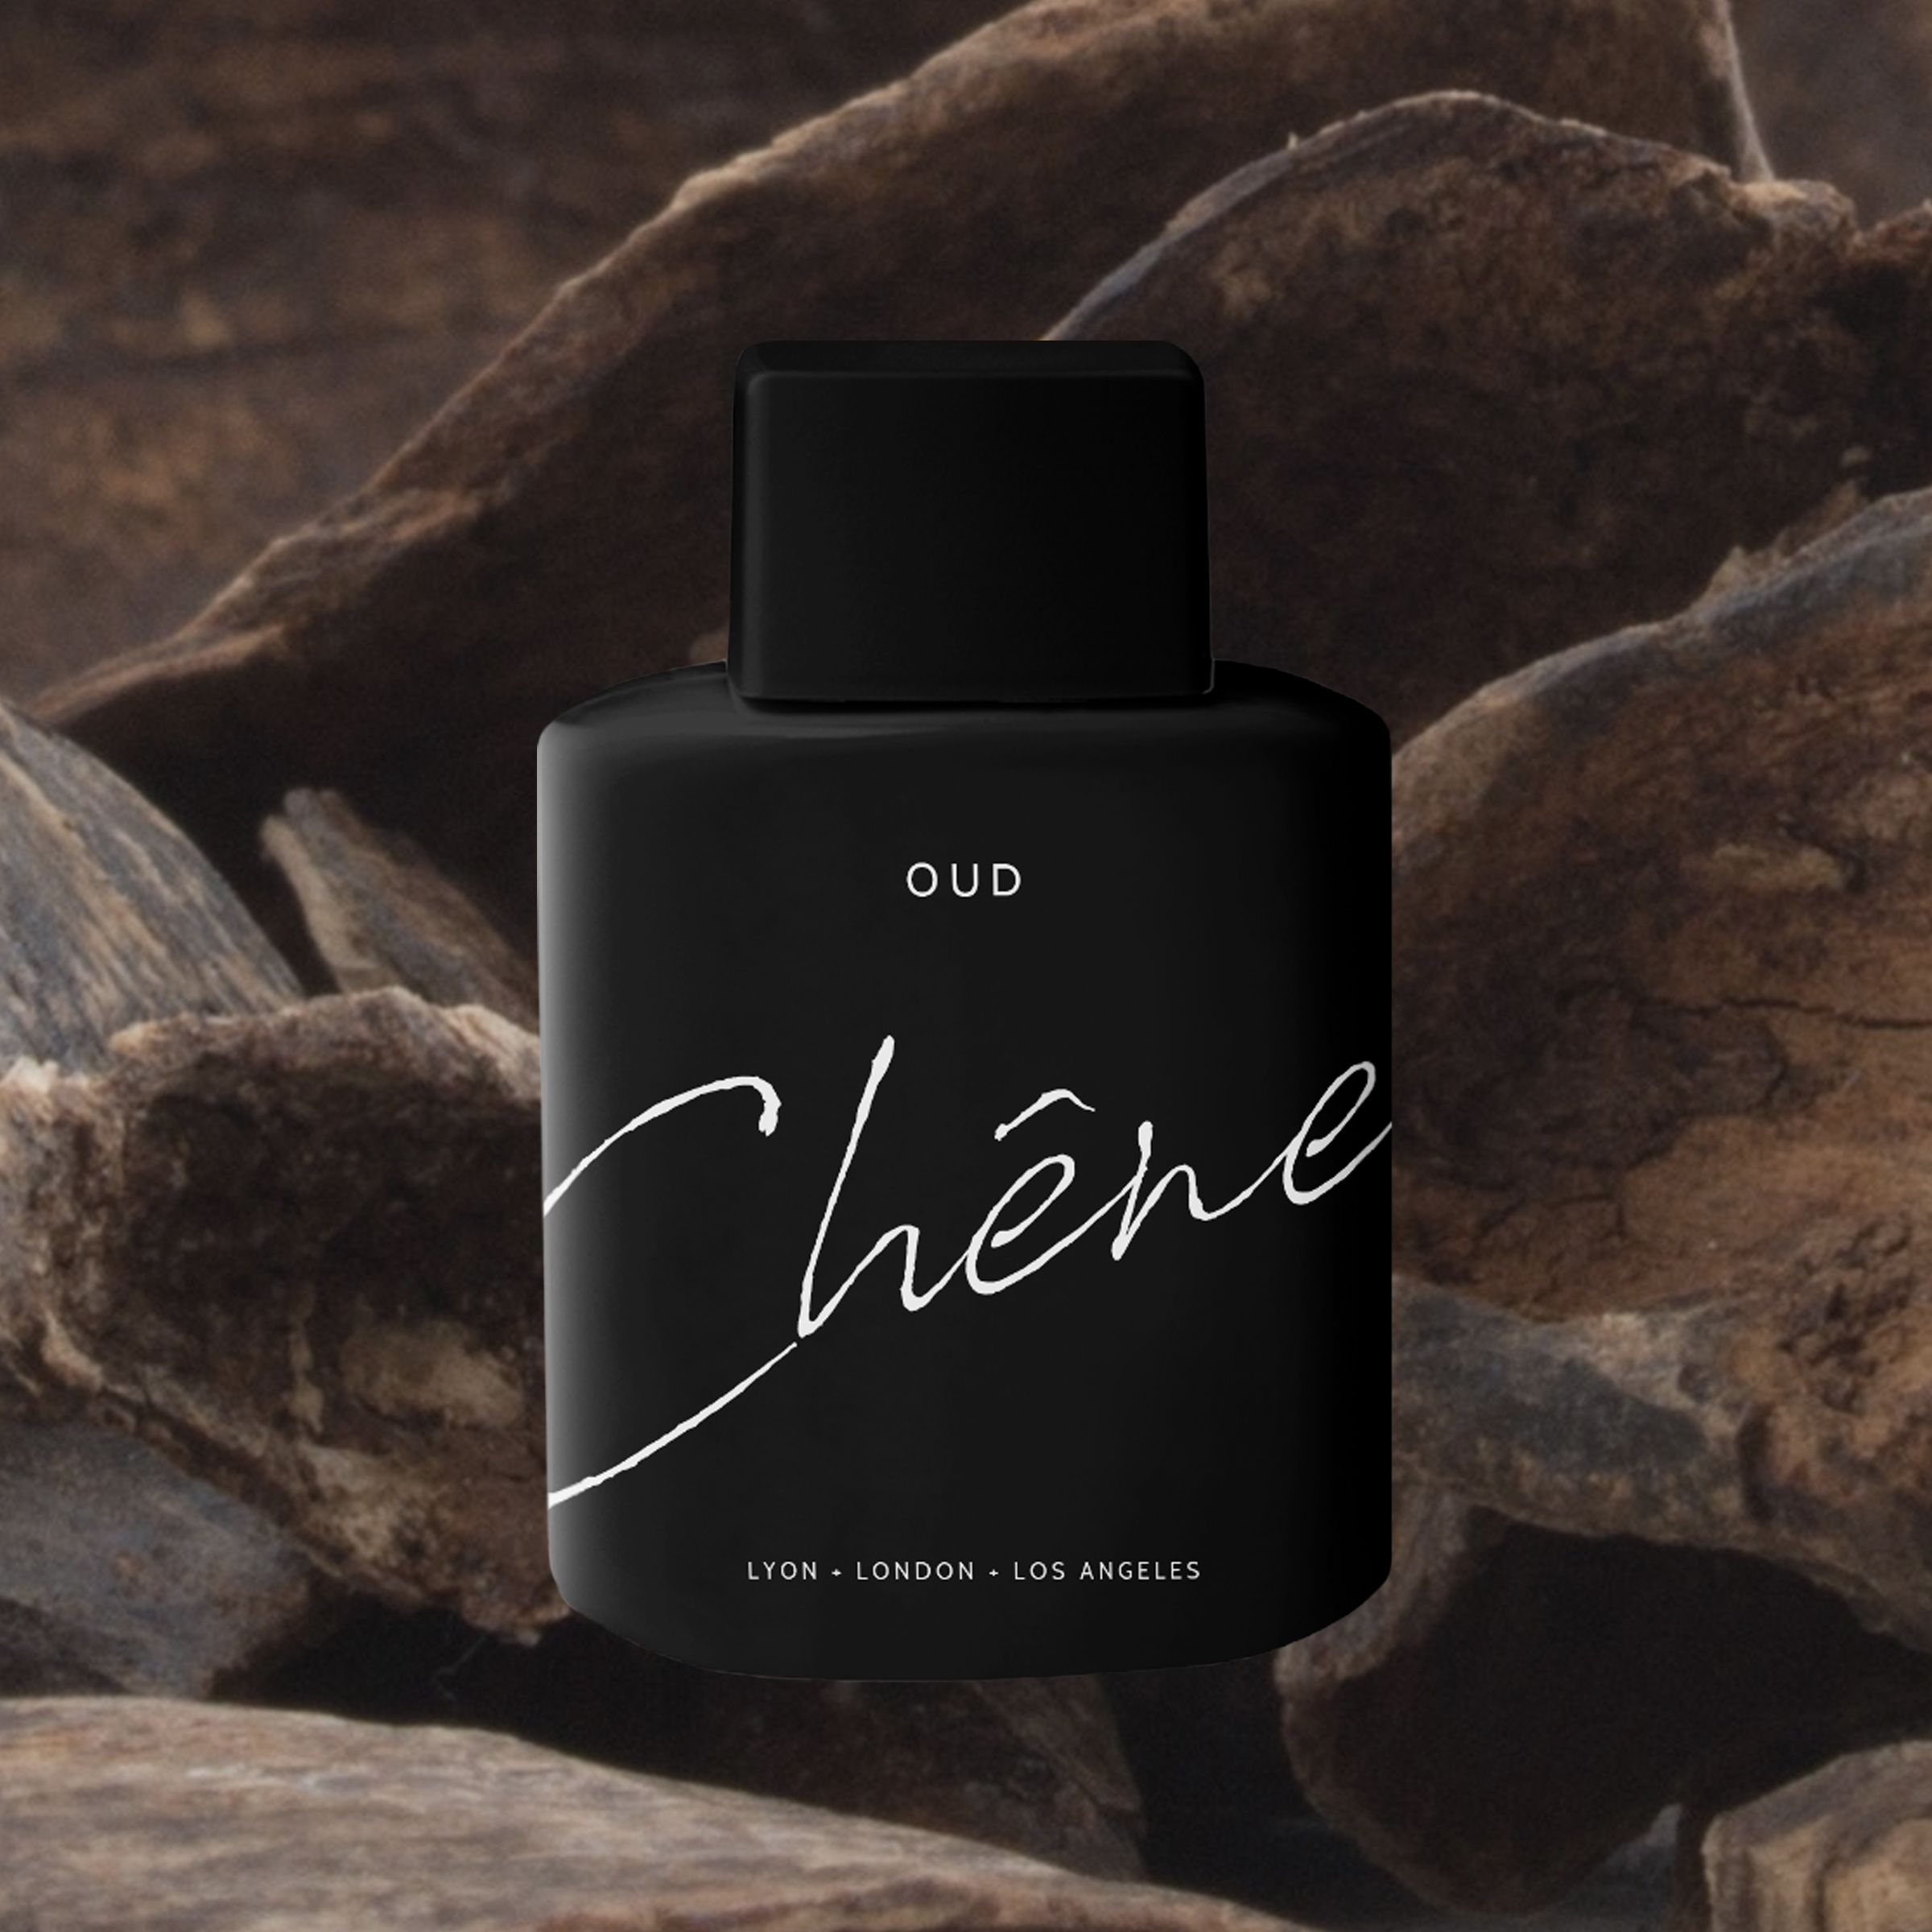 chene oud with image.jpg